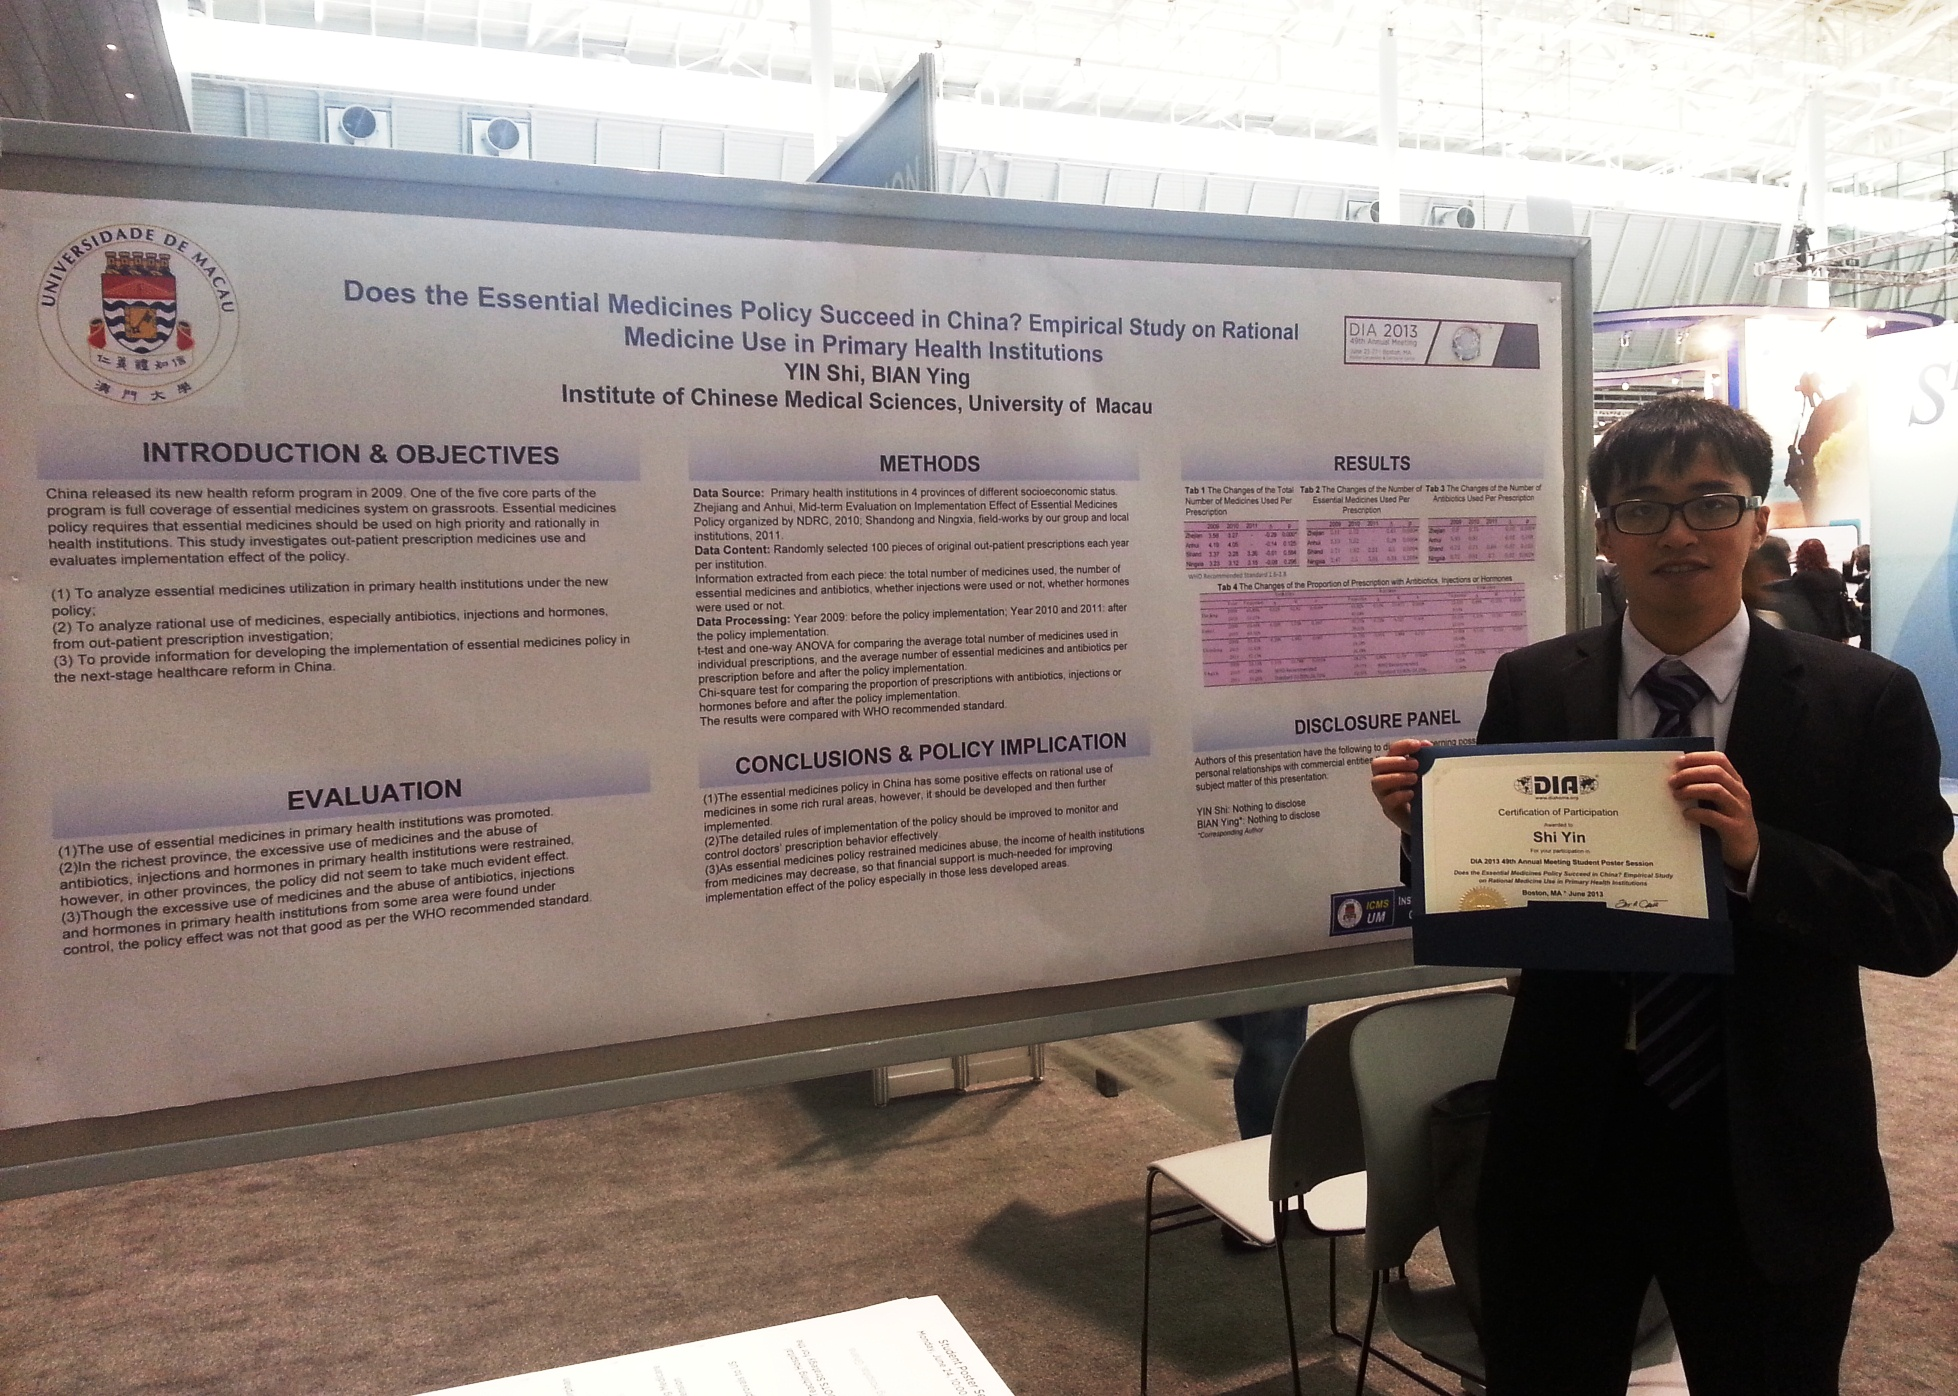 Yin Shi attends the 49th DIA Annual Meeting as a student poster presenter with full funding